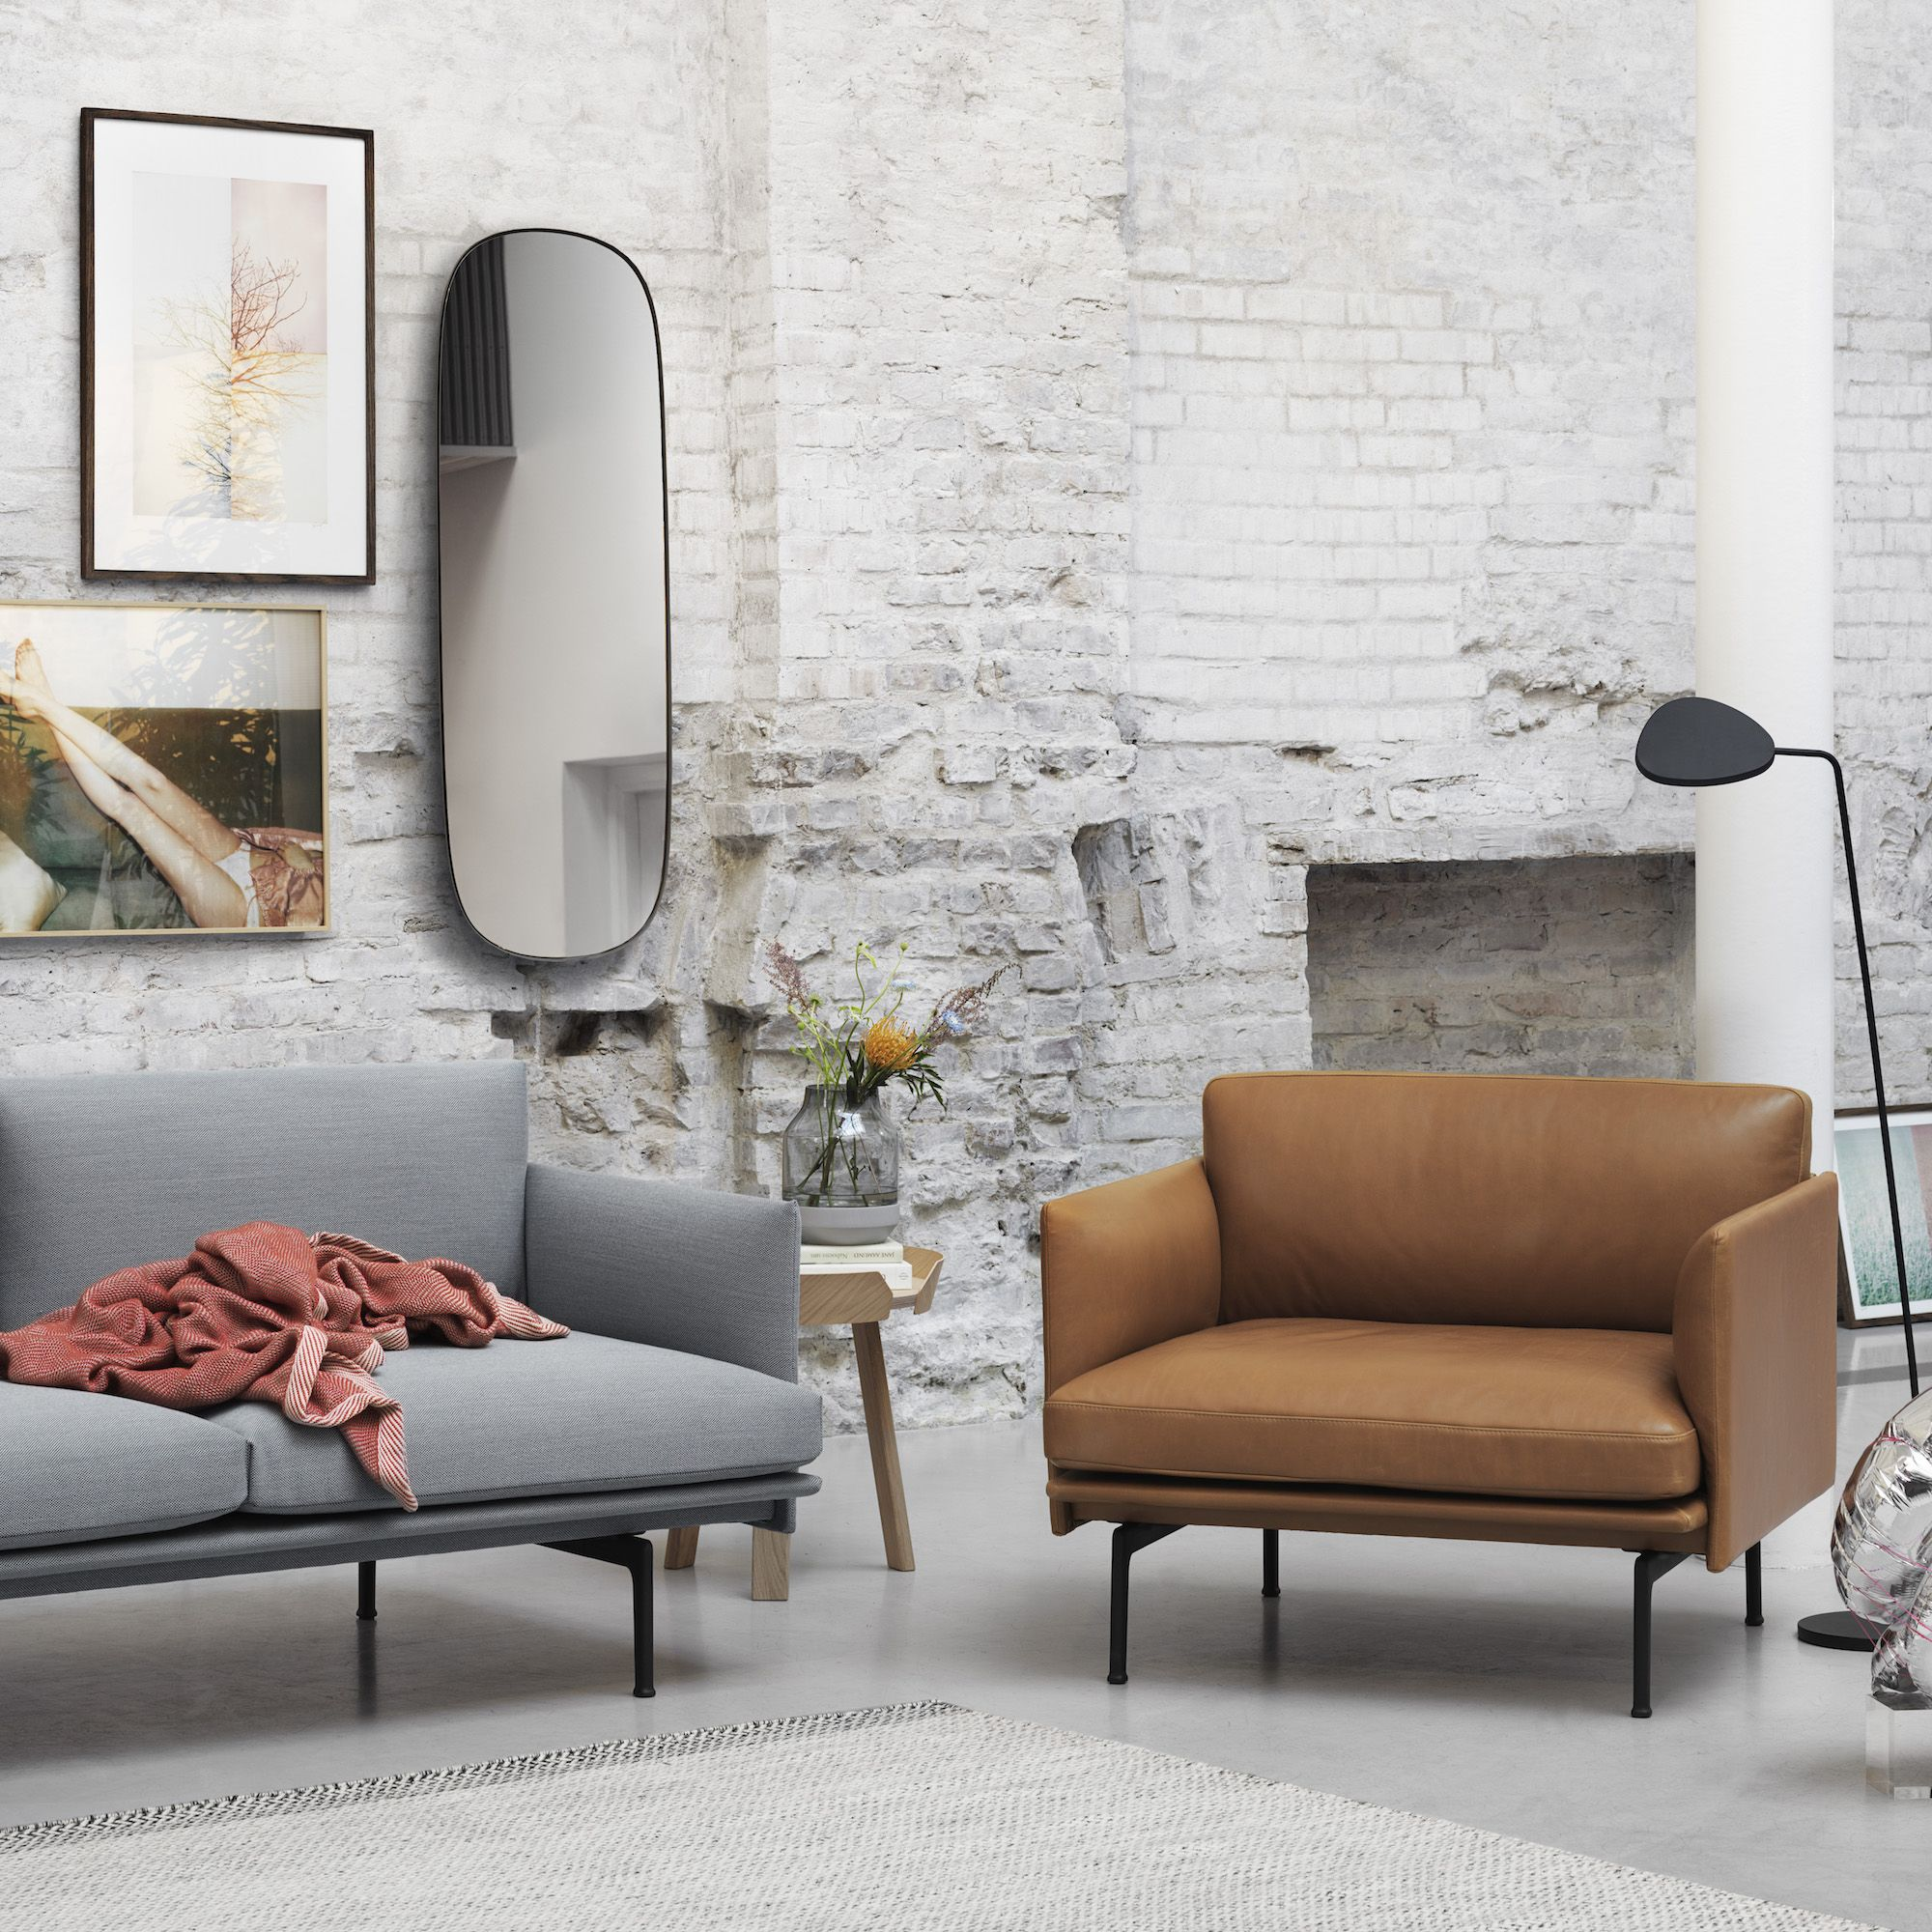 Muuto - OUTLINE Chair & Sofa | Sofas und like | Pinterest | Outlines ...